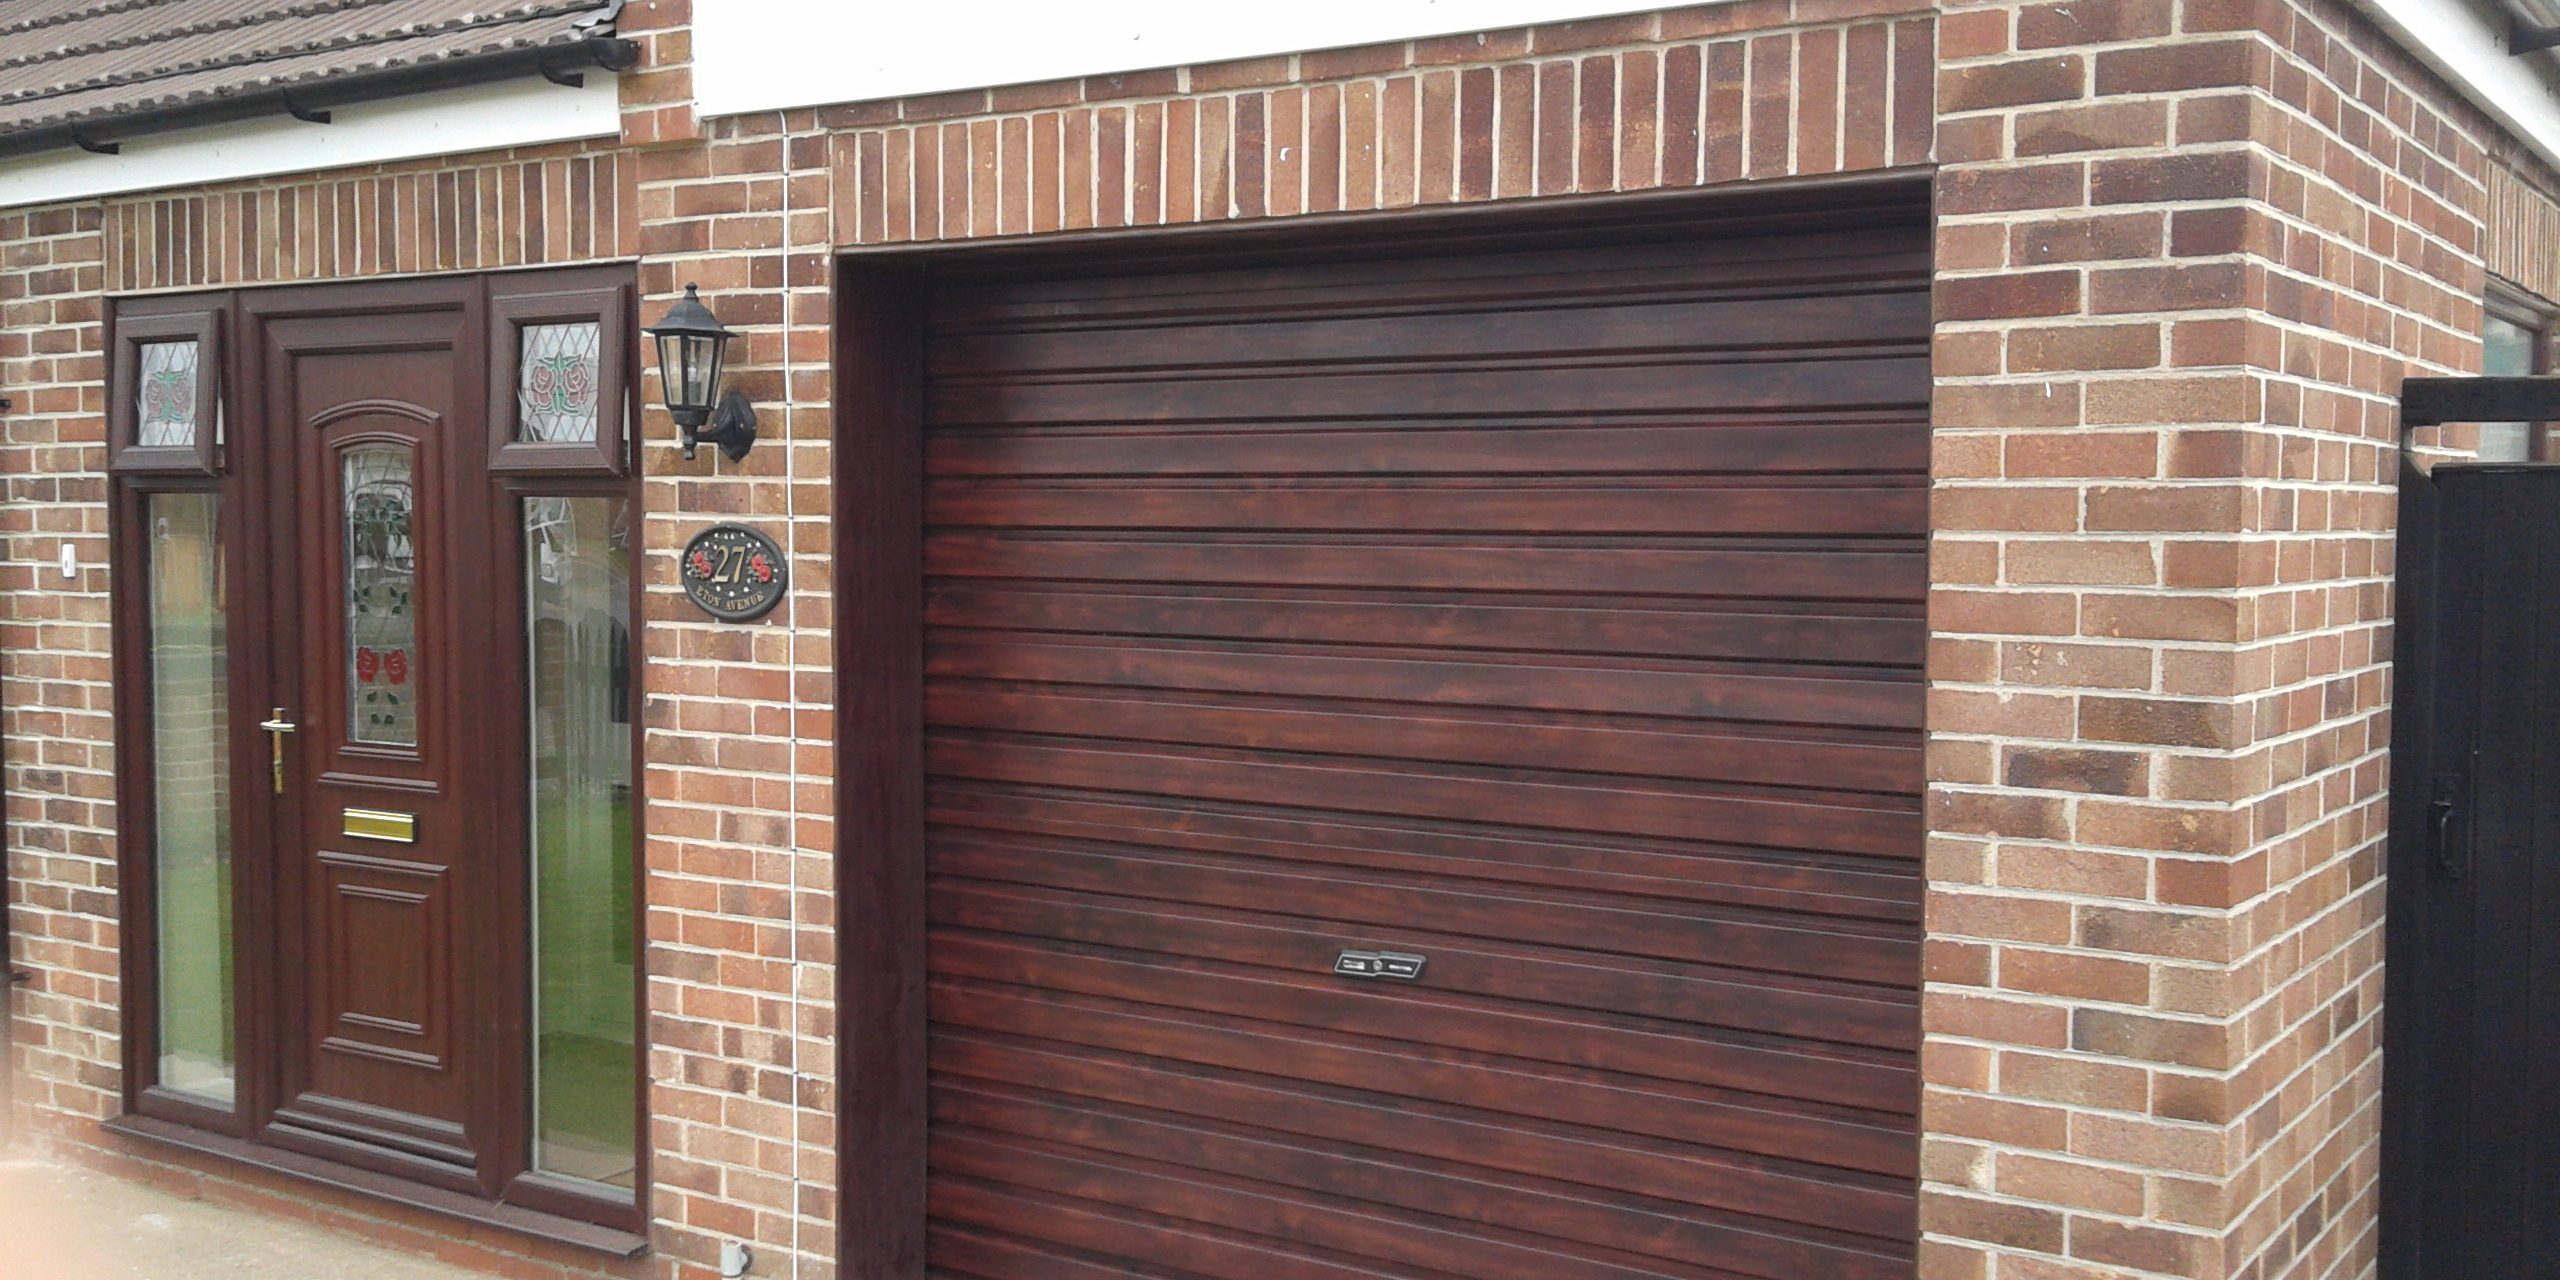 New Roller Garage Door Newark : rosewood door - pezcame.com